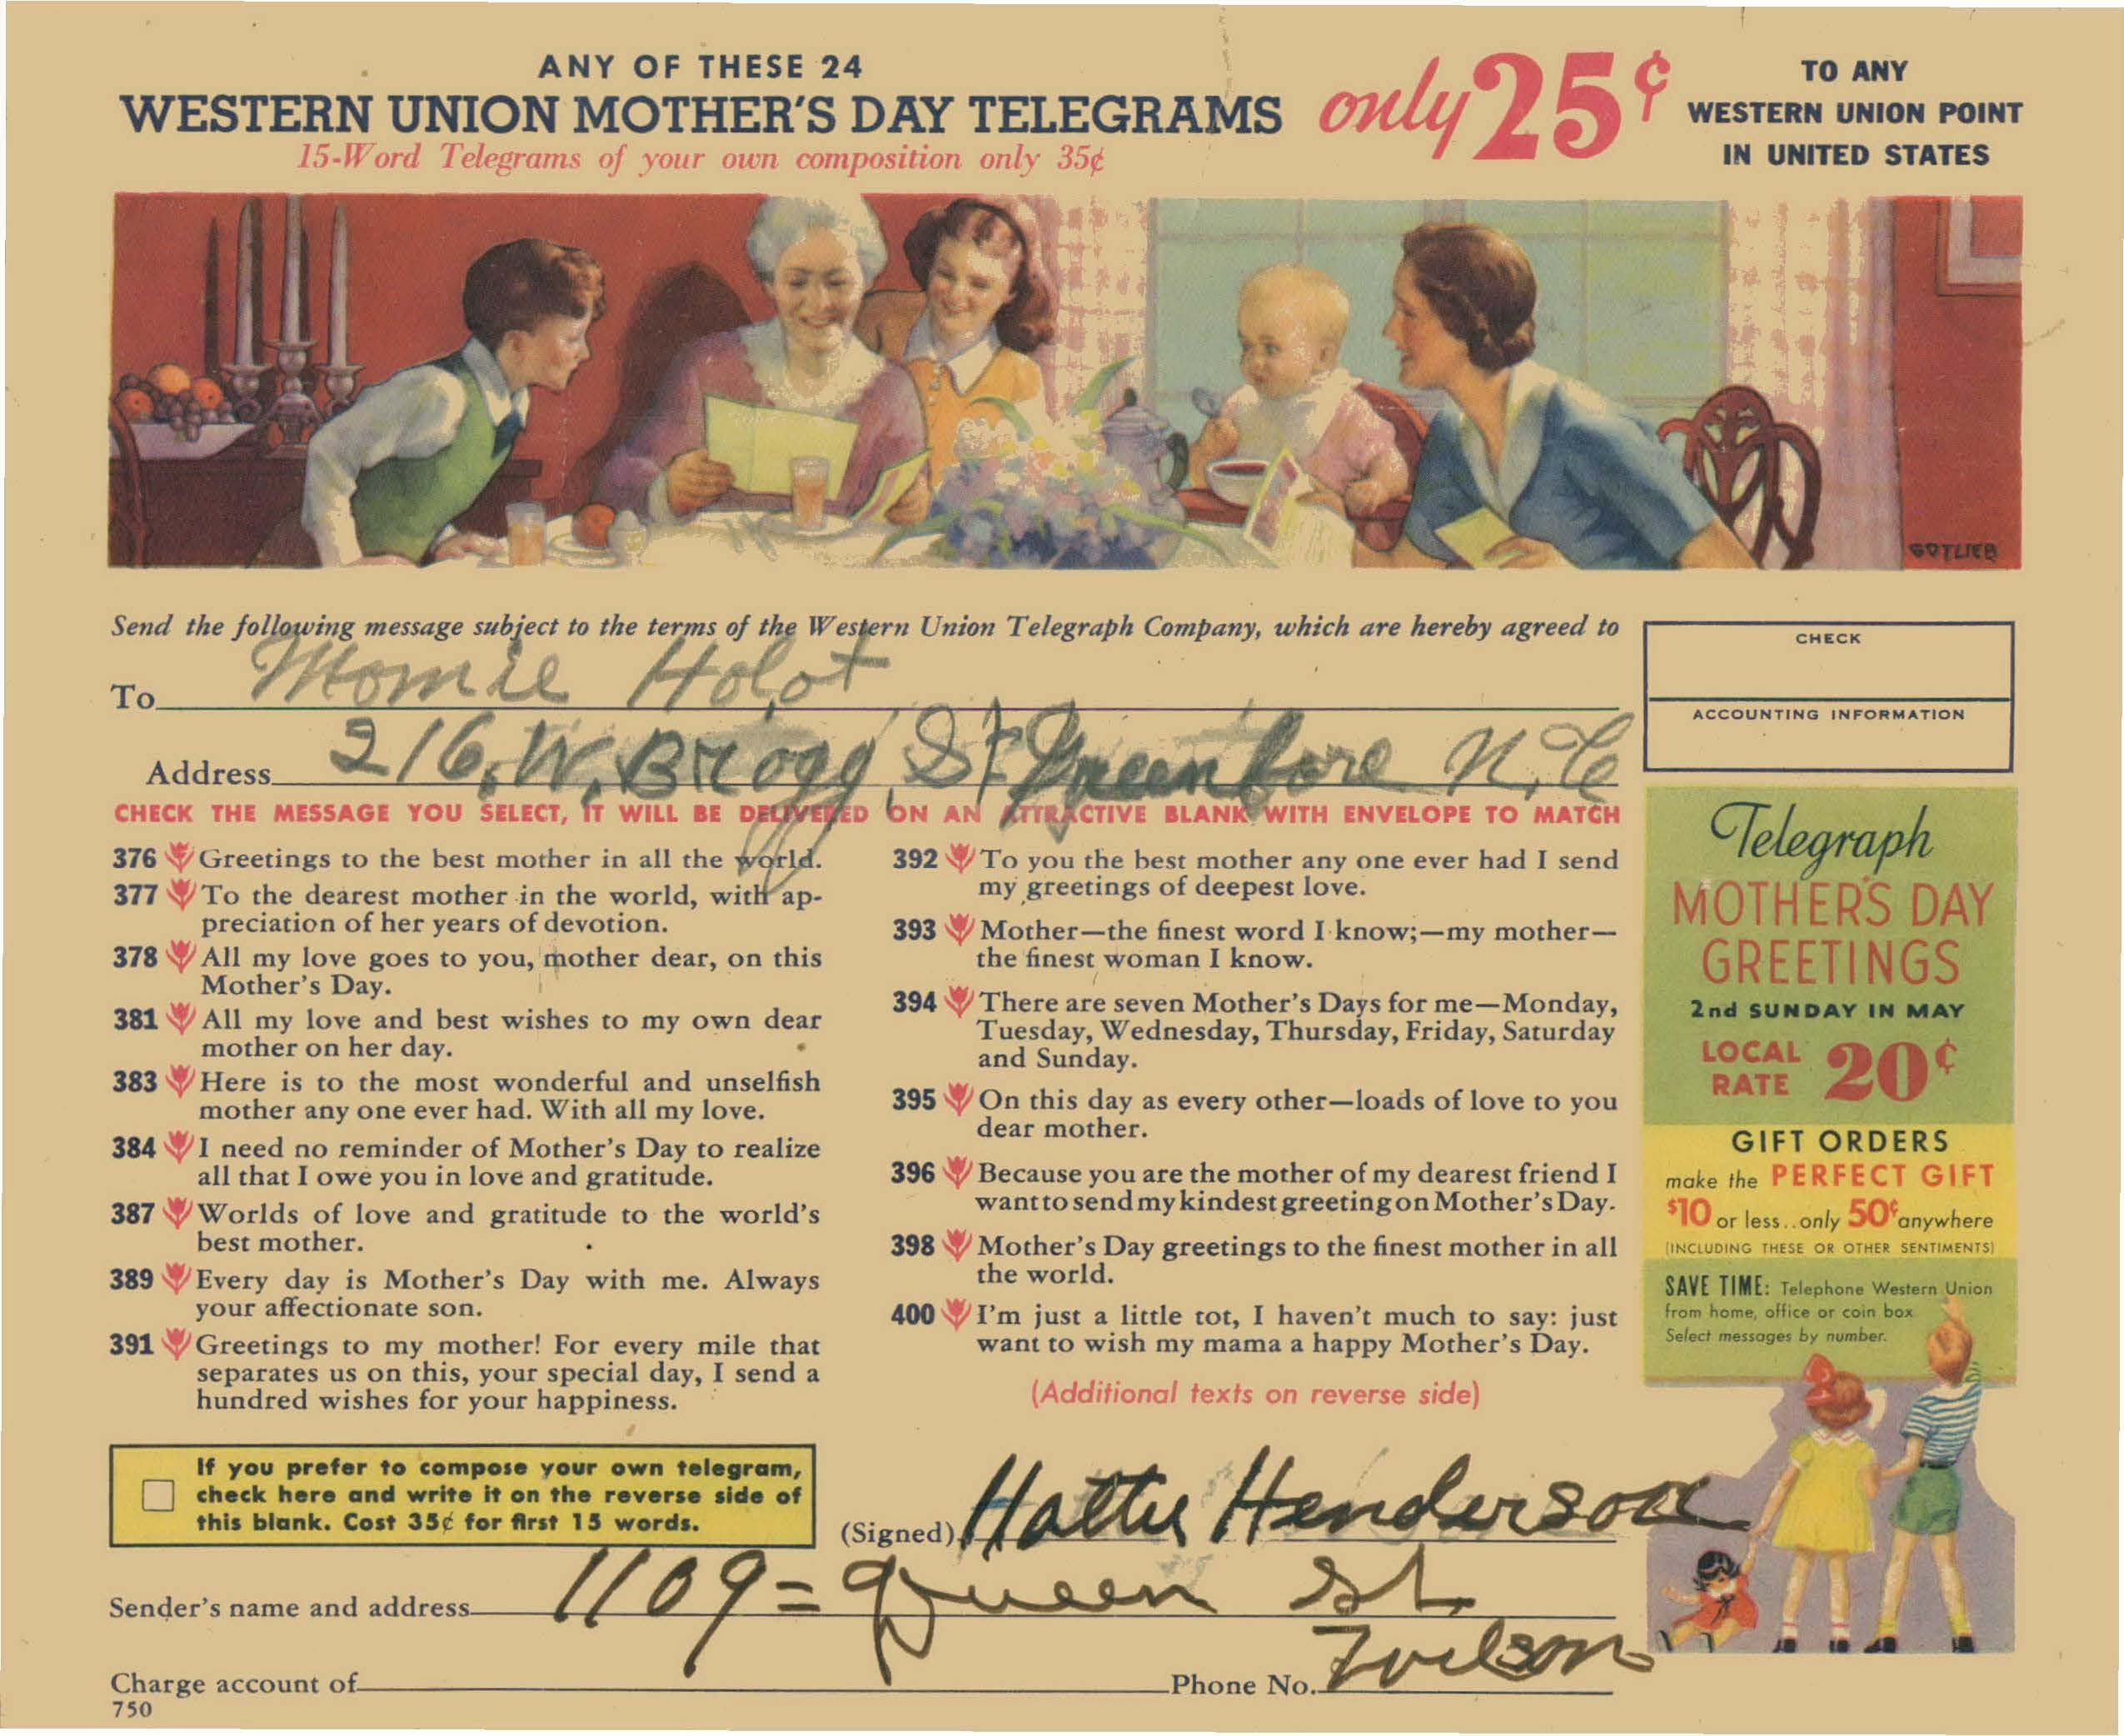 Mothers Day telegram_Page_1